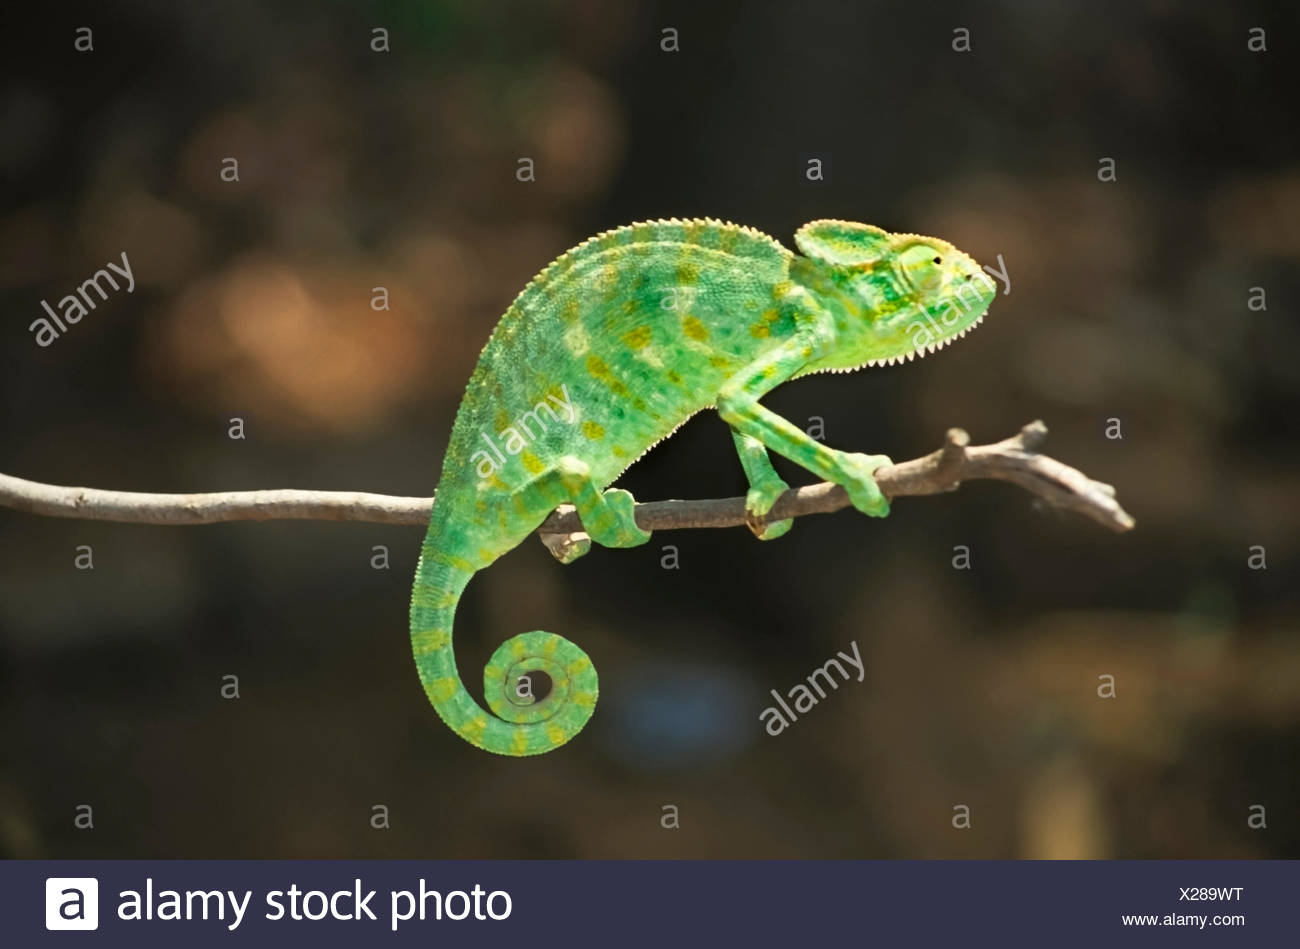 South Asian Chameleon, Chamaeleo zeylanicus, The only species found in India - Stock Image